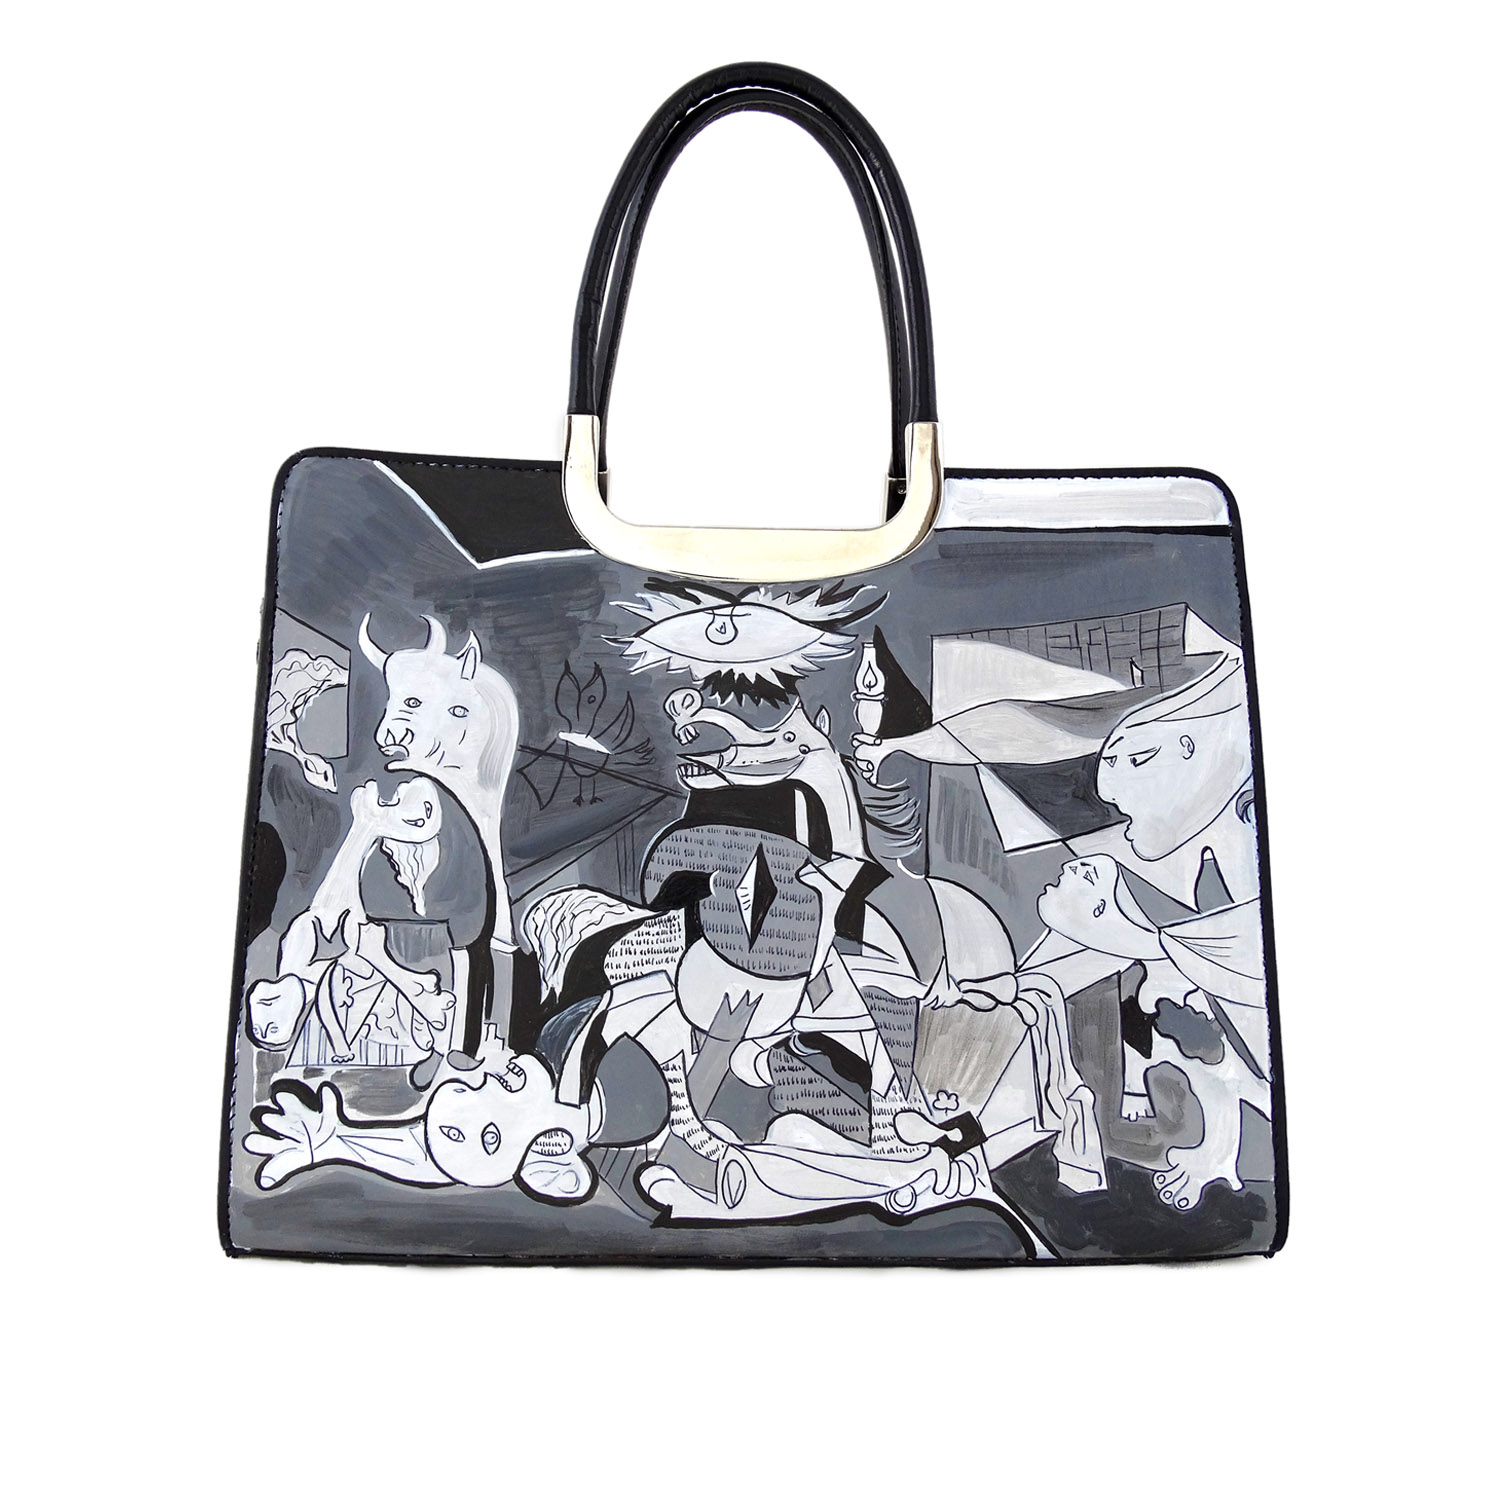 Handpainted bag - Guernica by Picasso